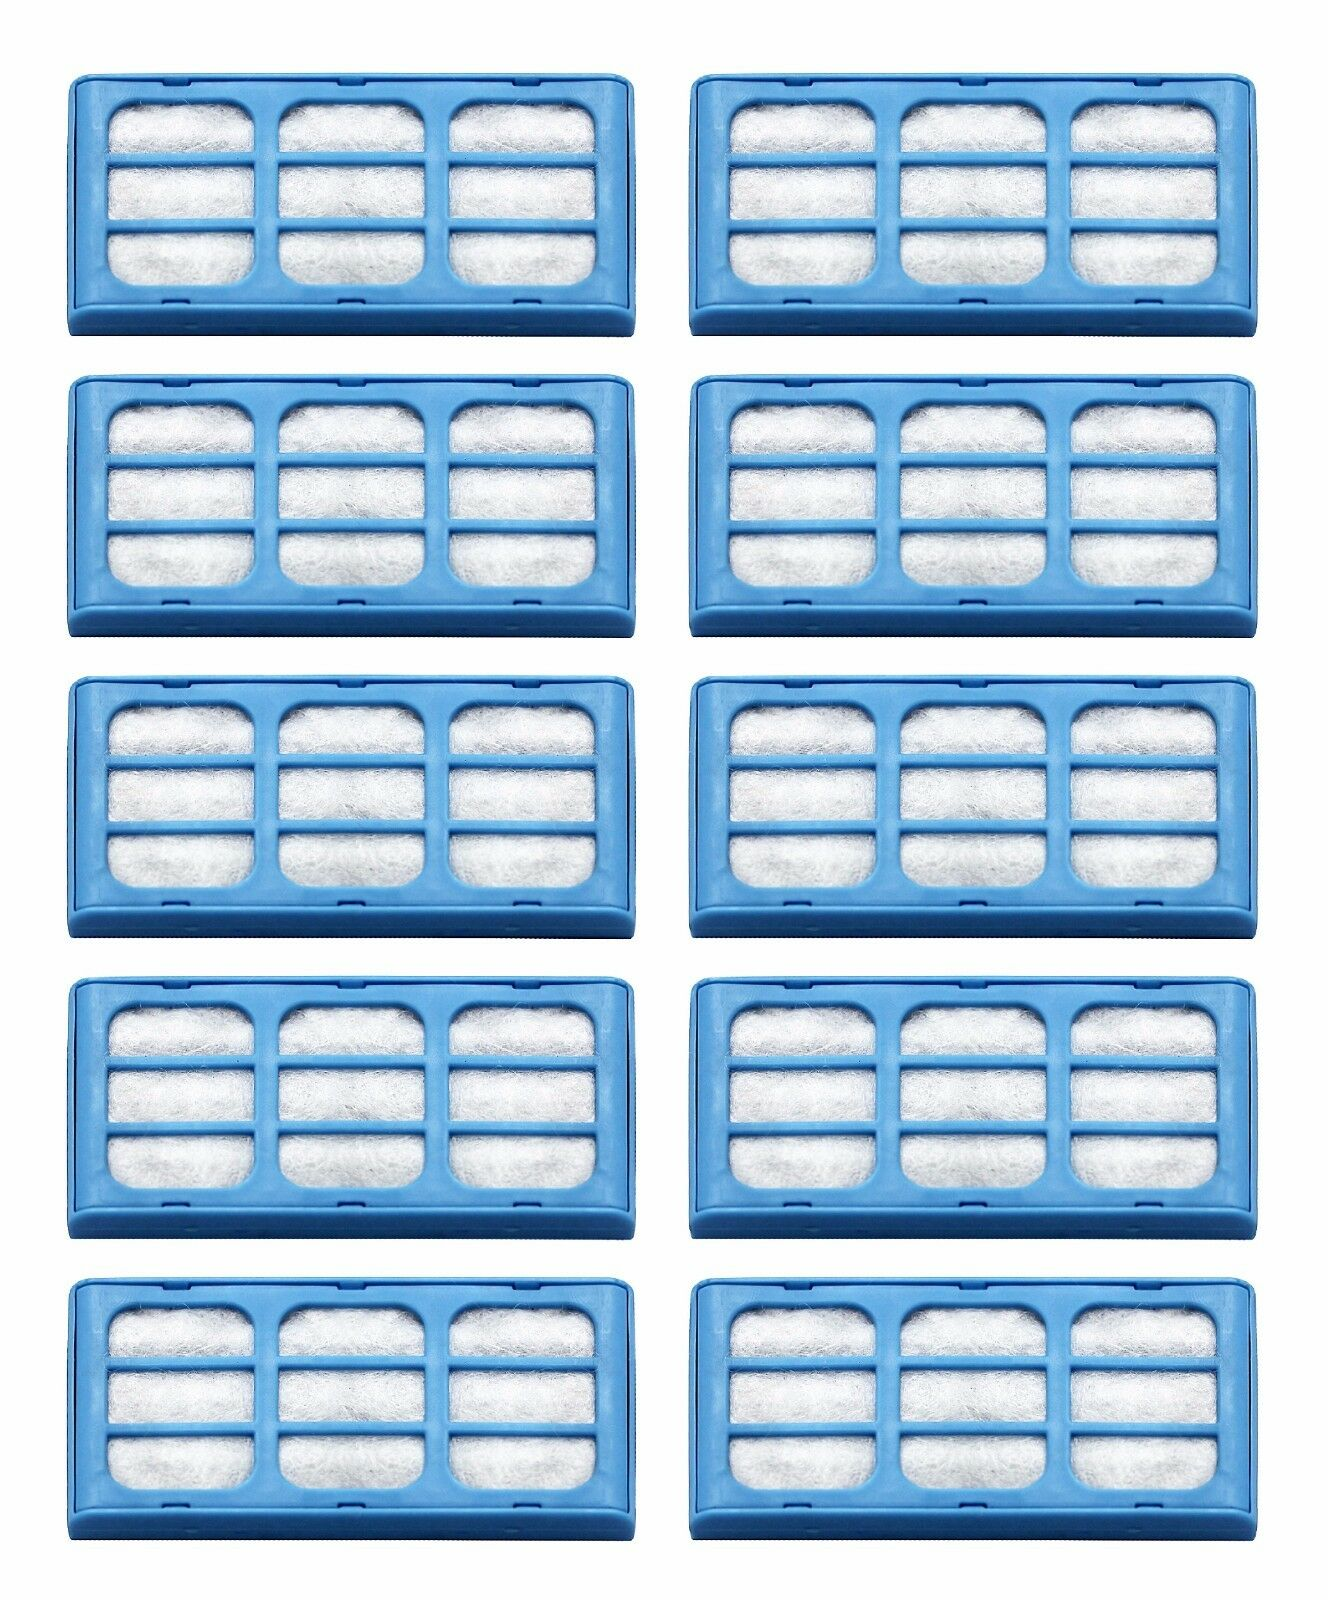 Replacement Water Filter Cartridges for Cat Mate & Dog Mate Fountains - 10 Pack